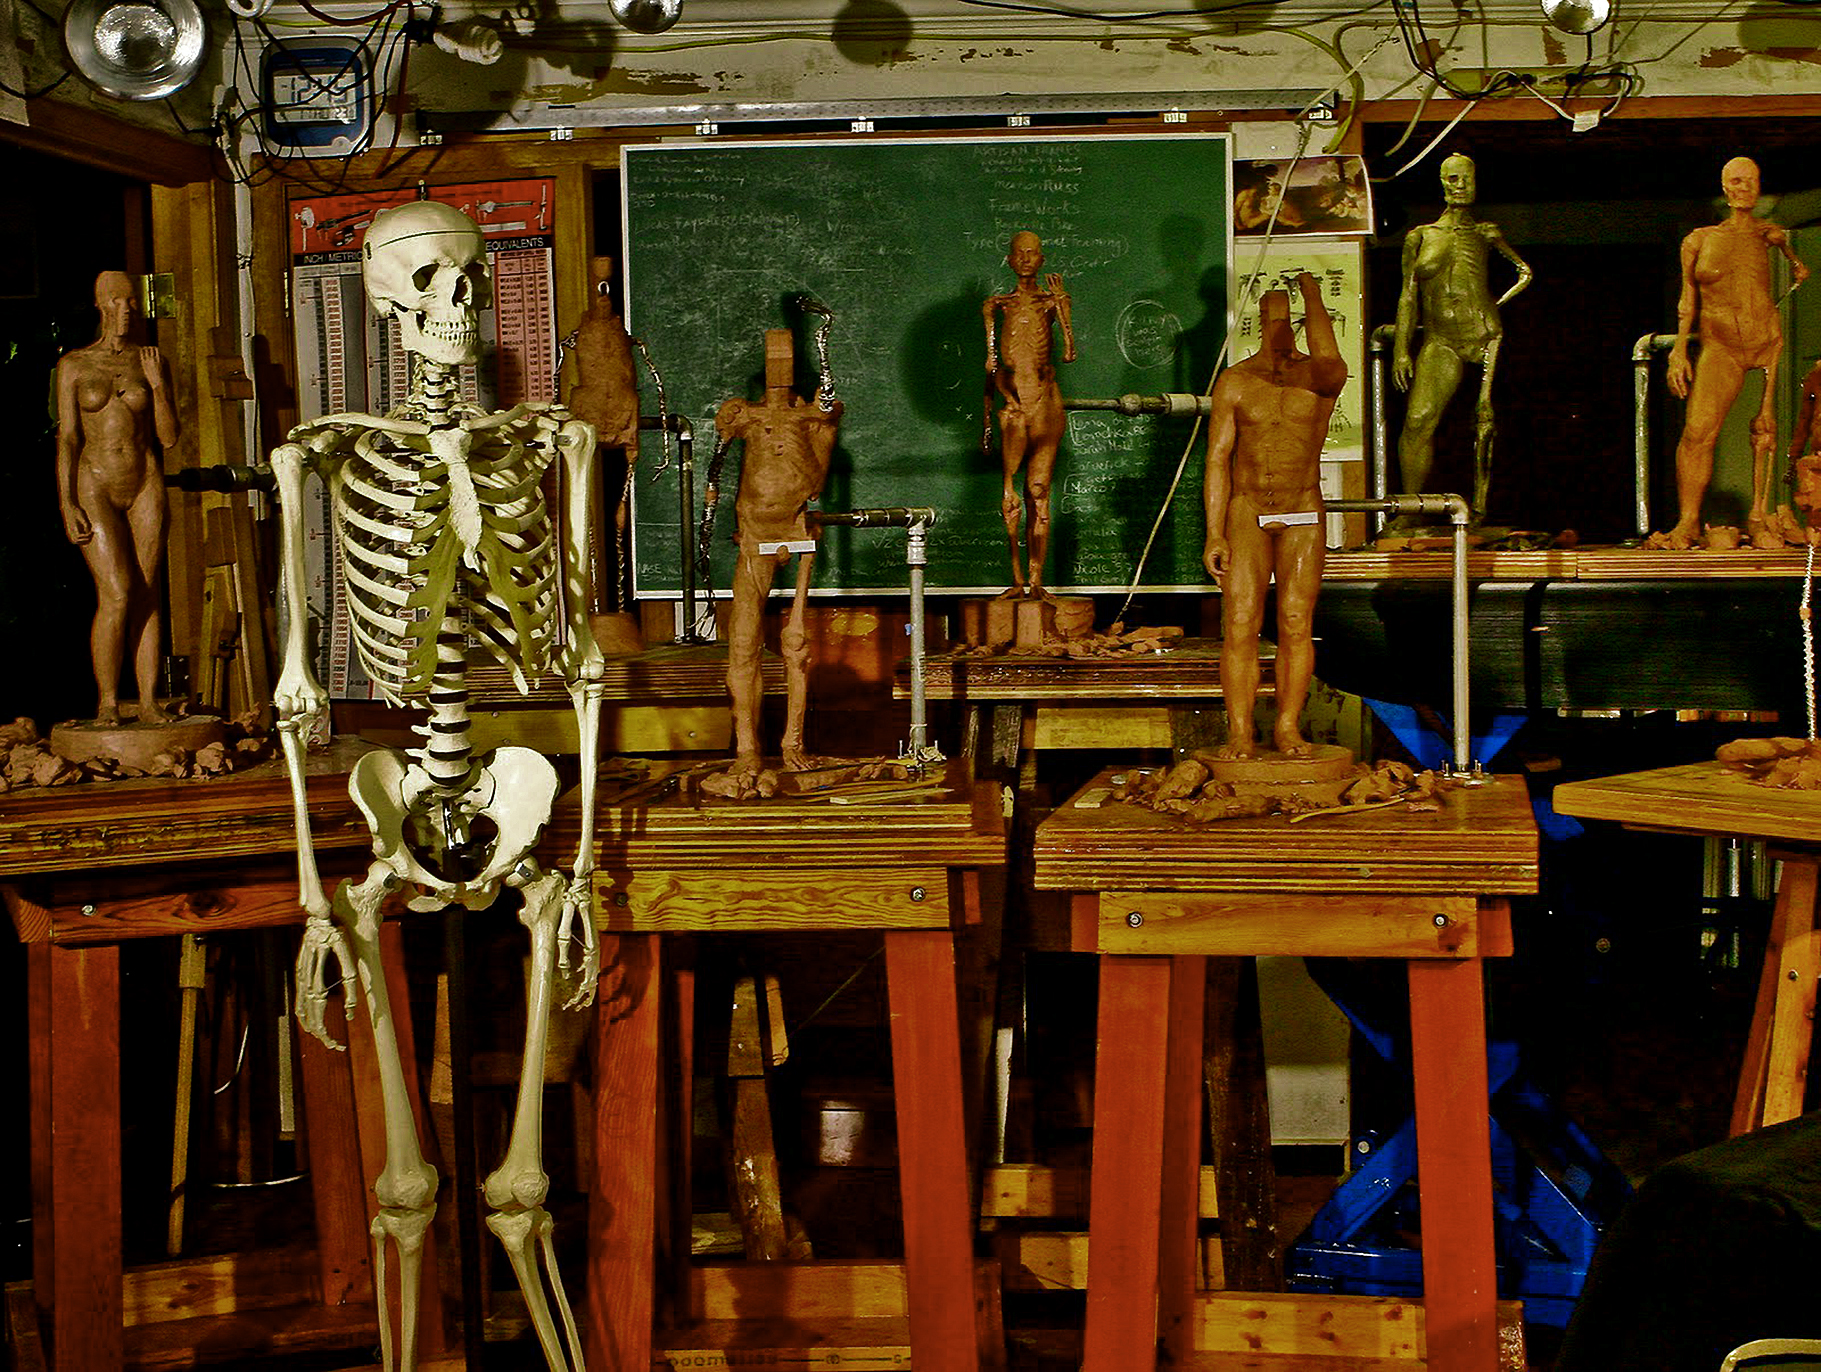 Sculptures and learning aids from the anatomical sculpture class, in the old Bethesda studio.